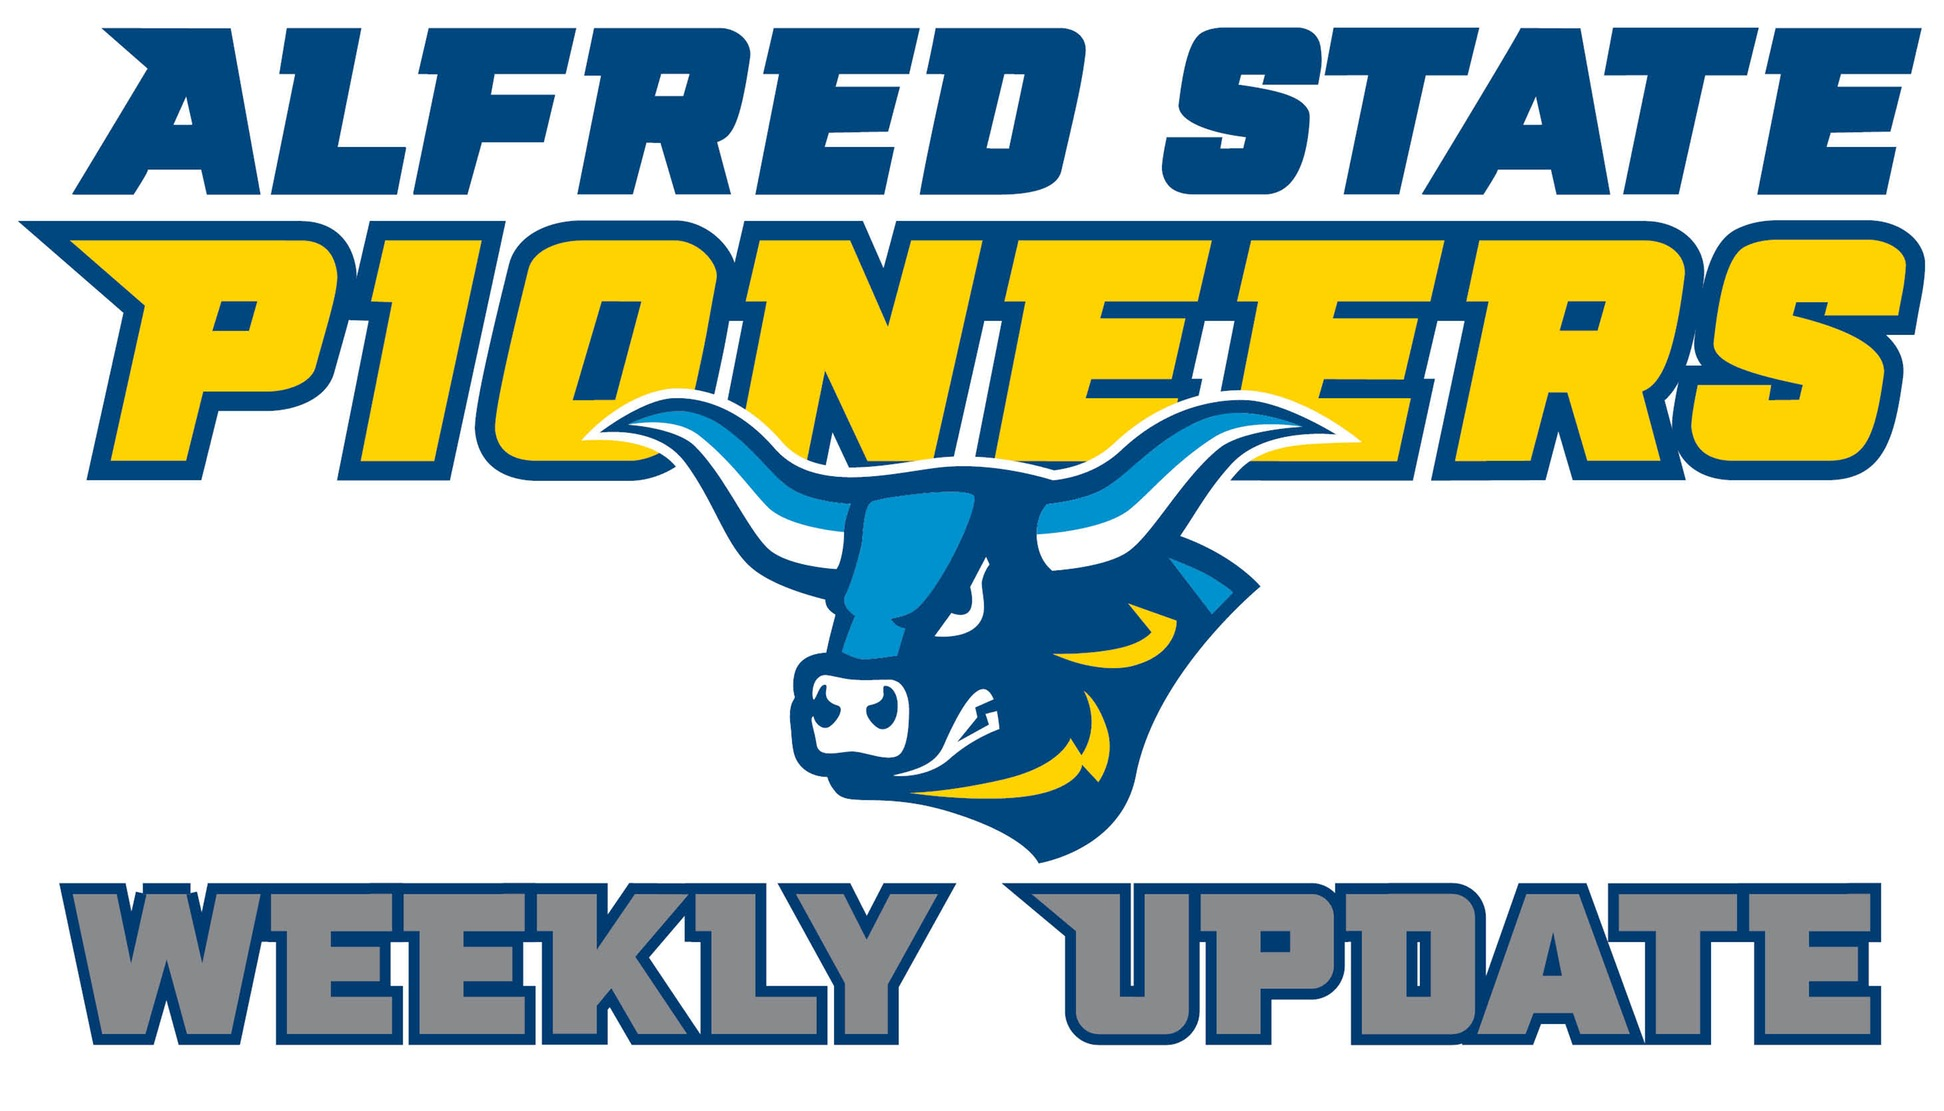 Athletic Department Weekly Update